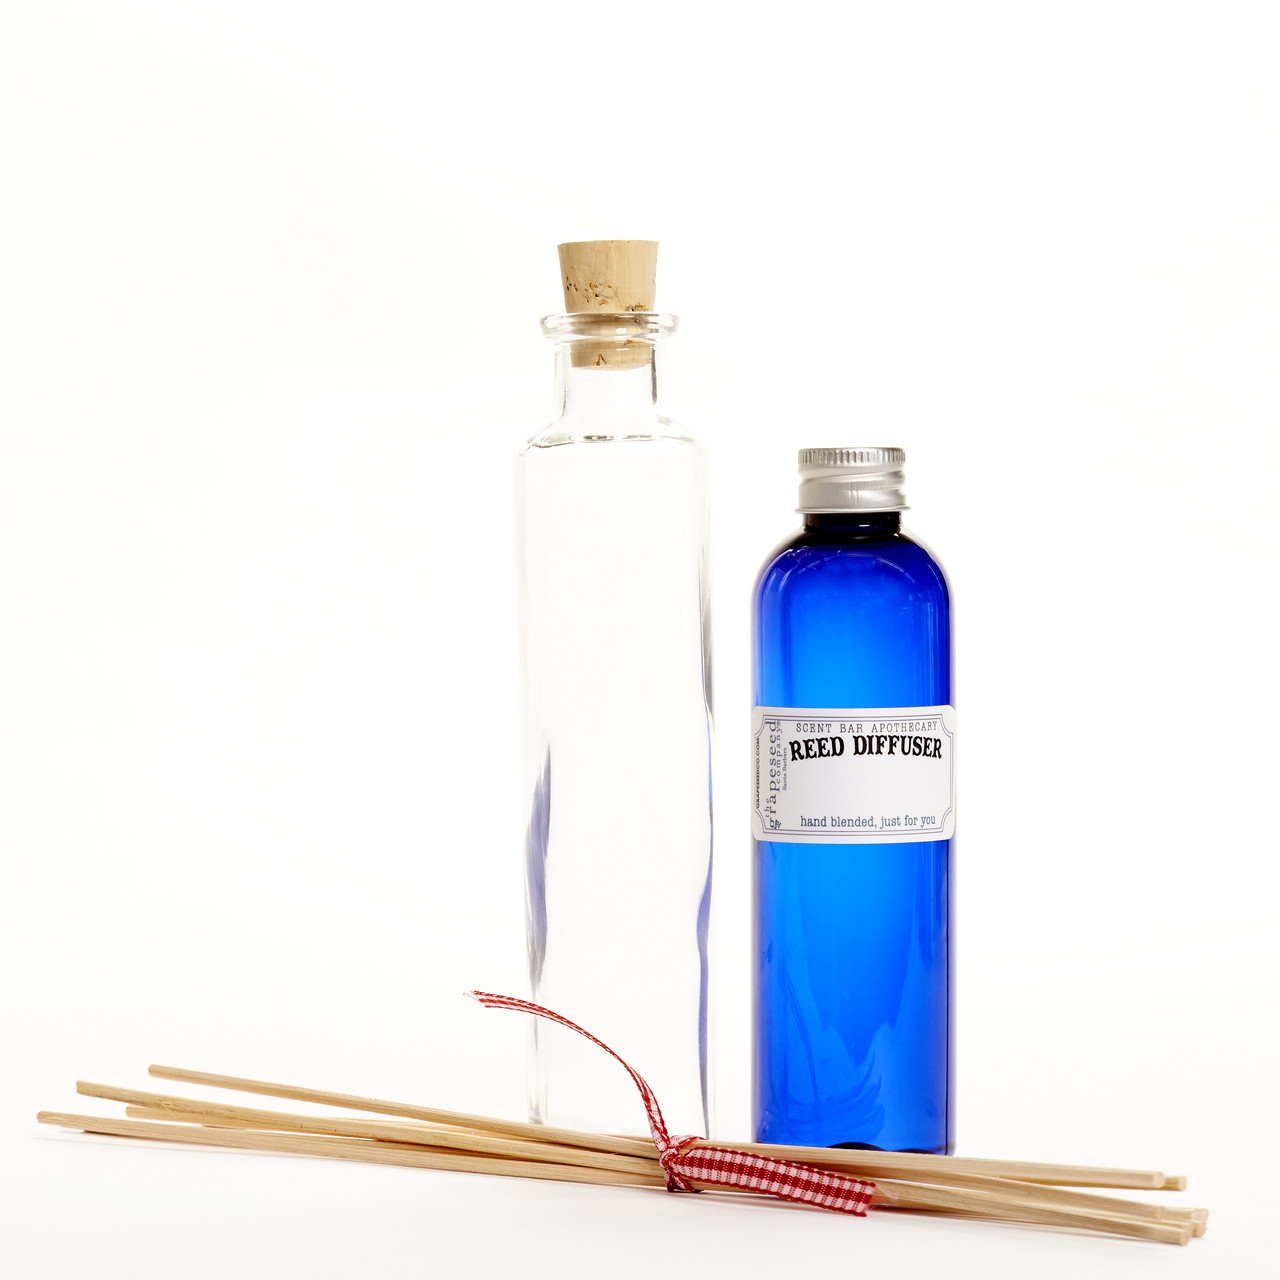 Refill Kit for the Create Your Own Reed Diffuser